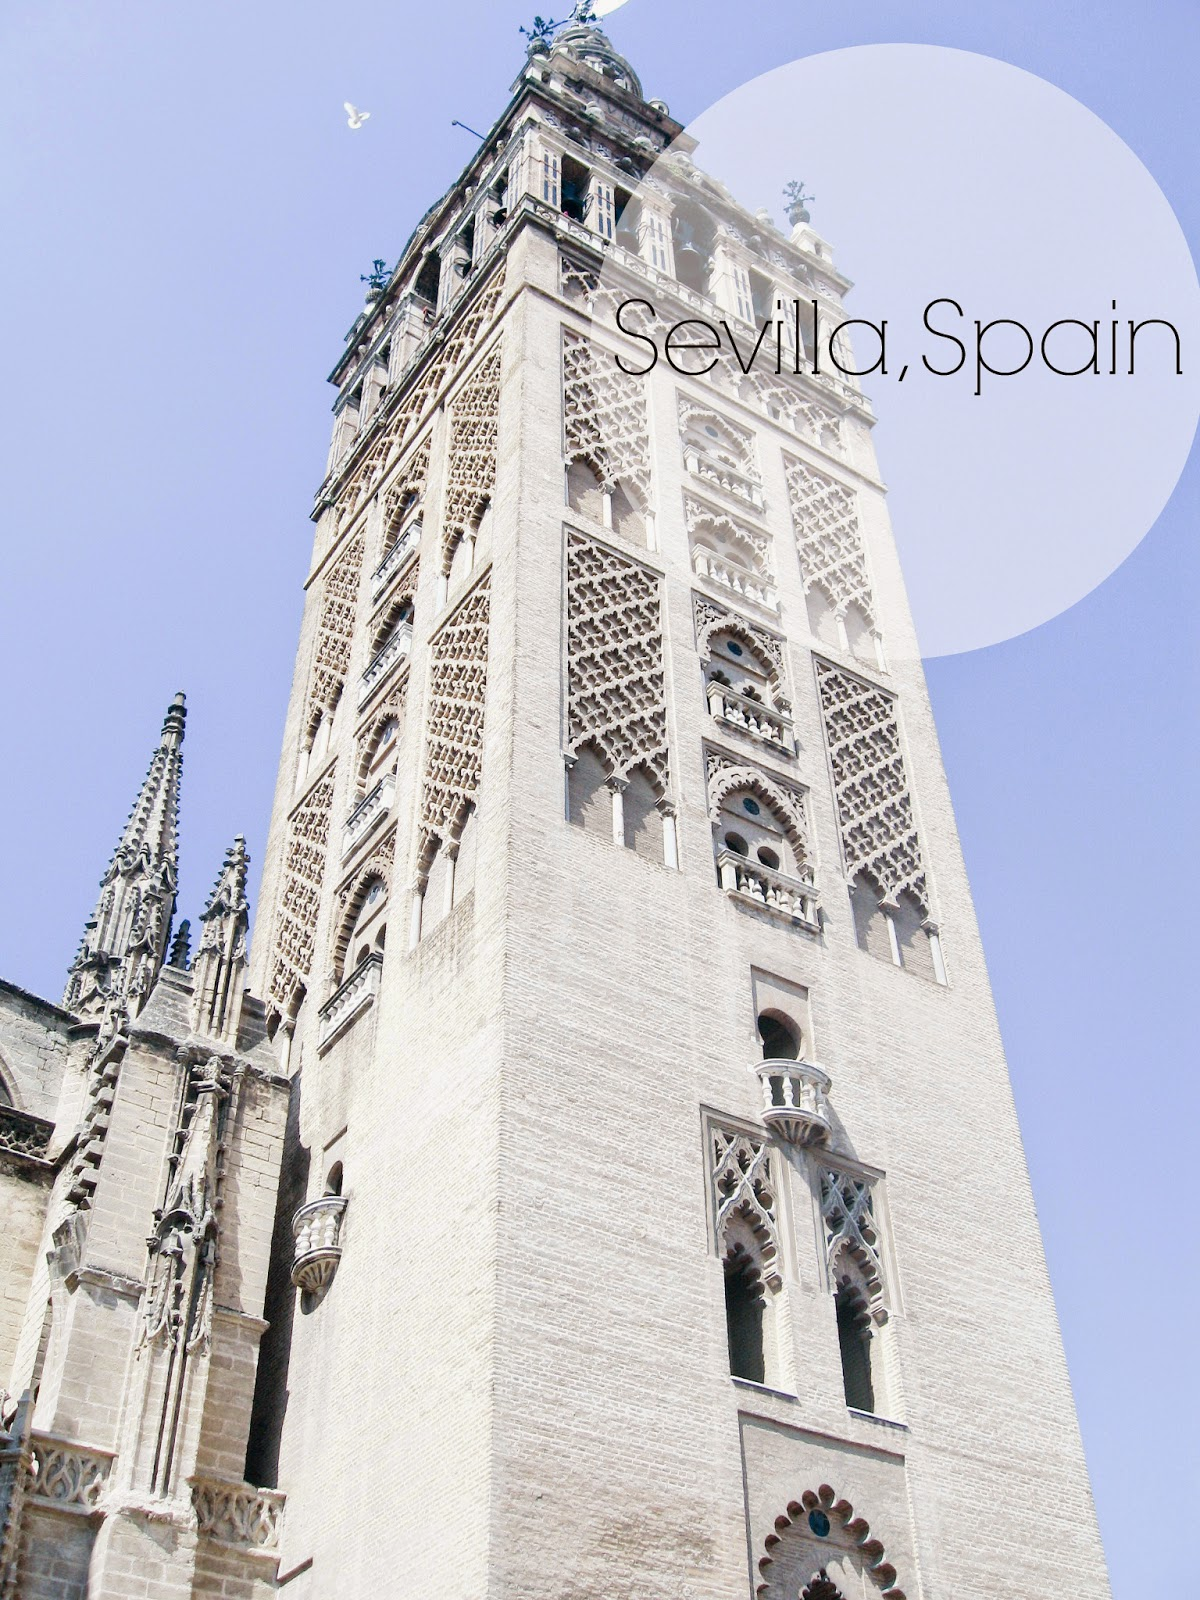 Geralda towers near Seville Cathedral SEVILLE, SPAIN